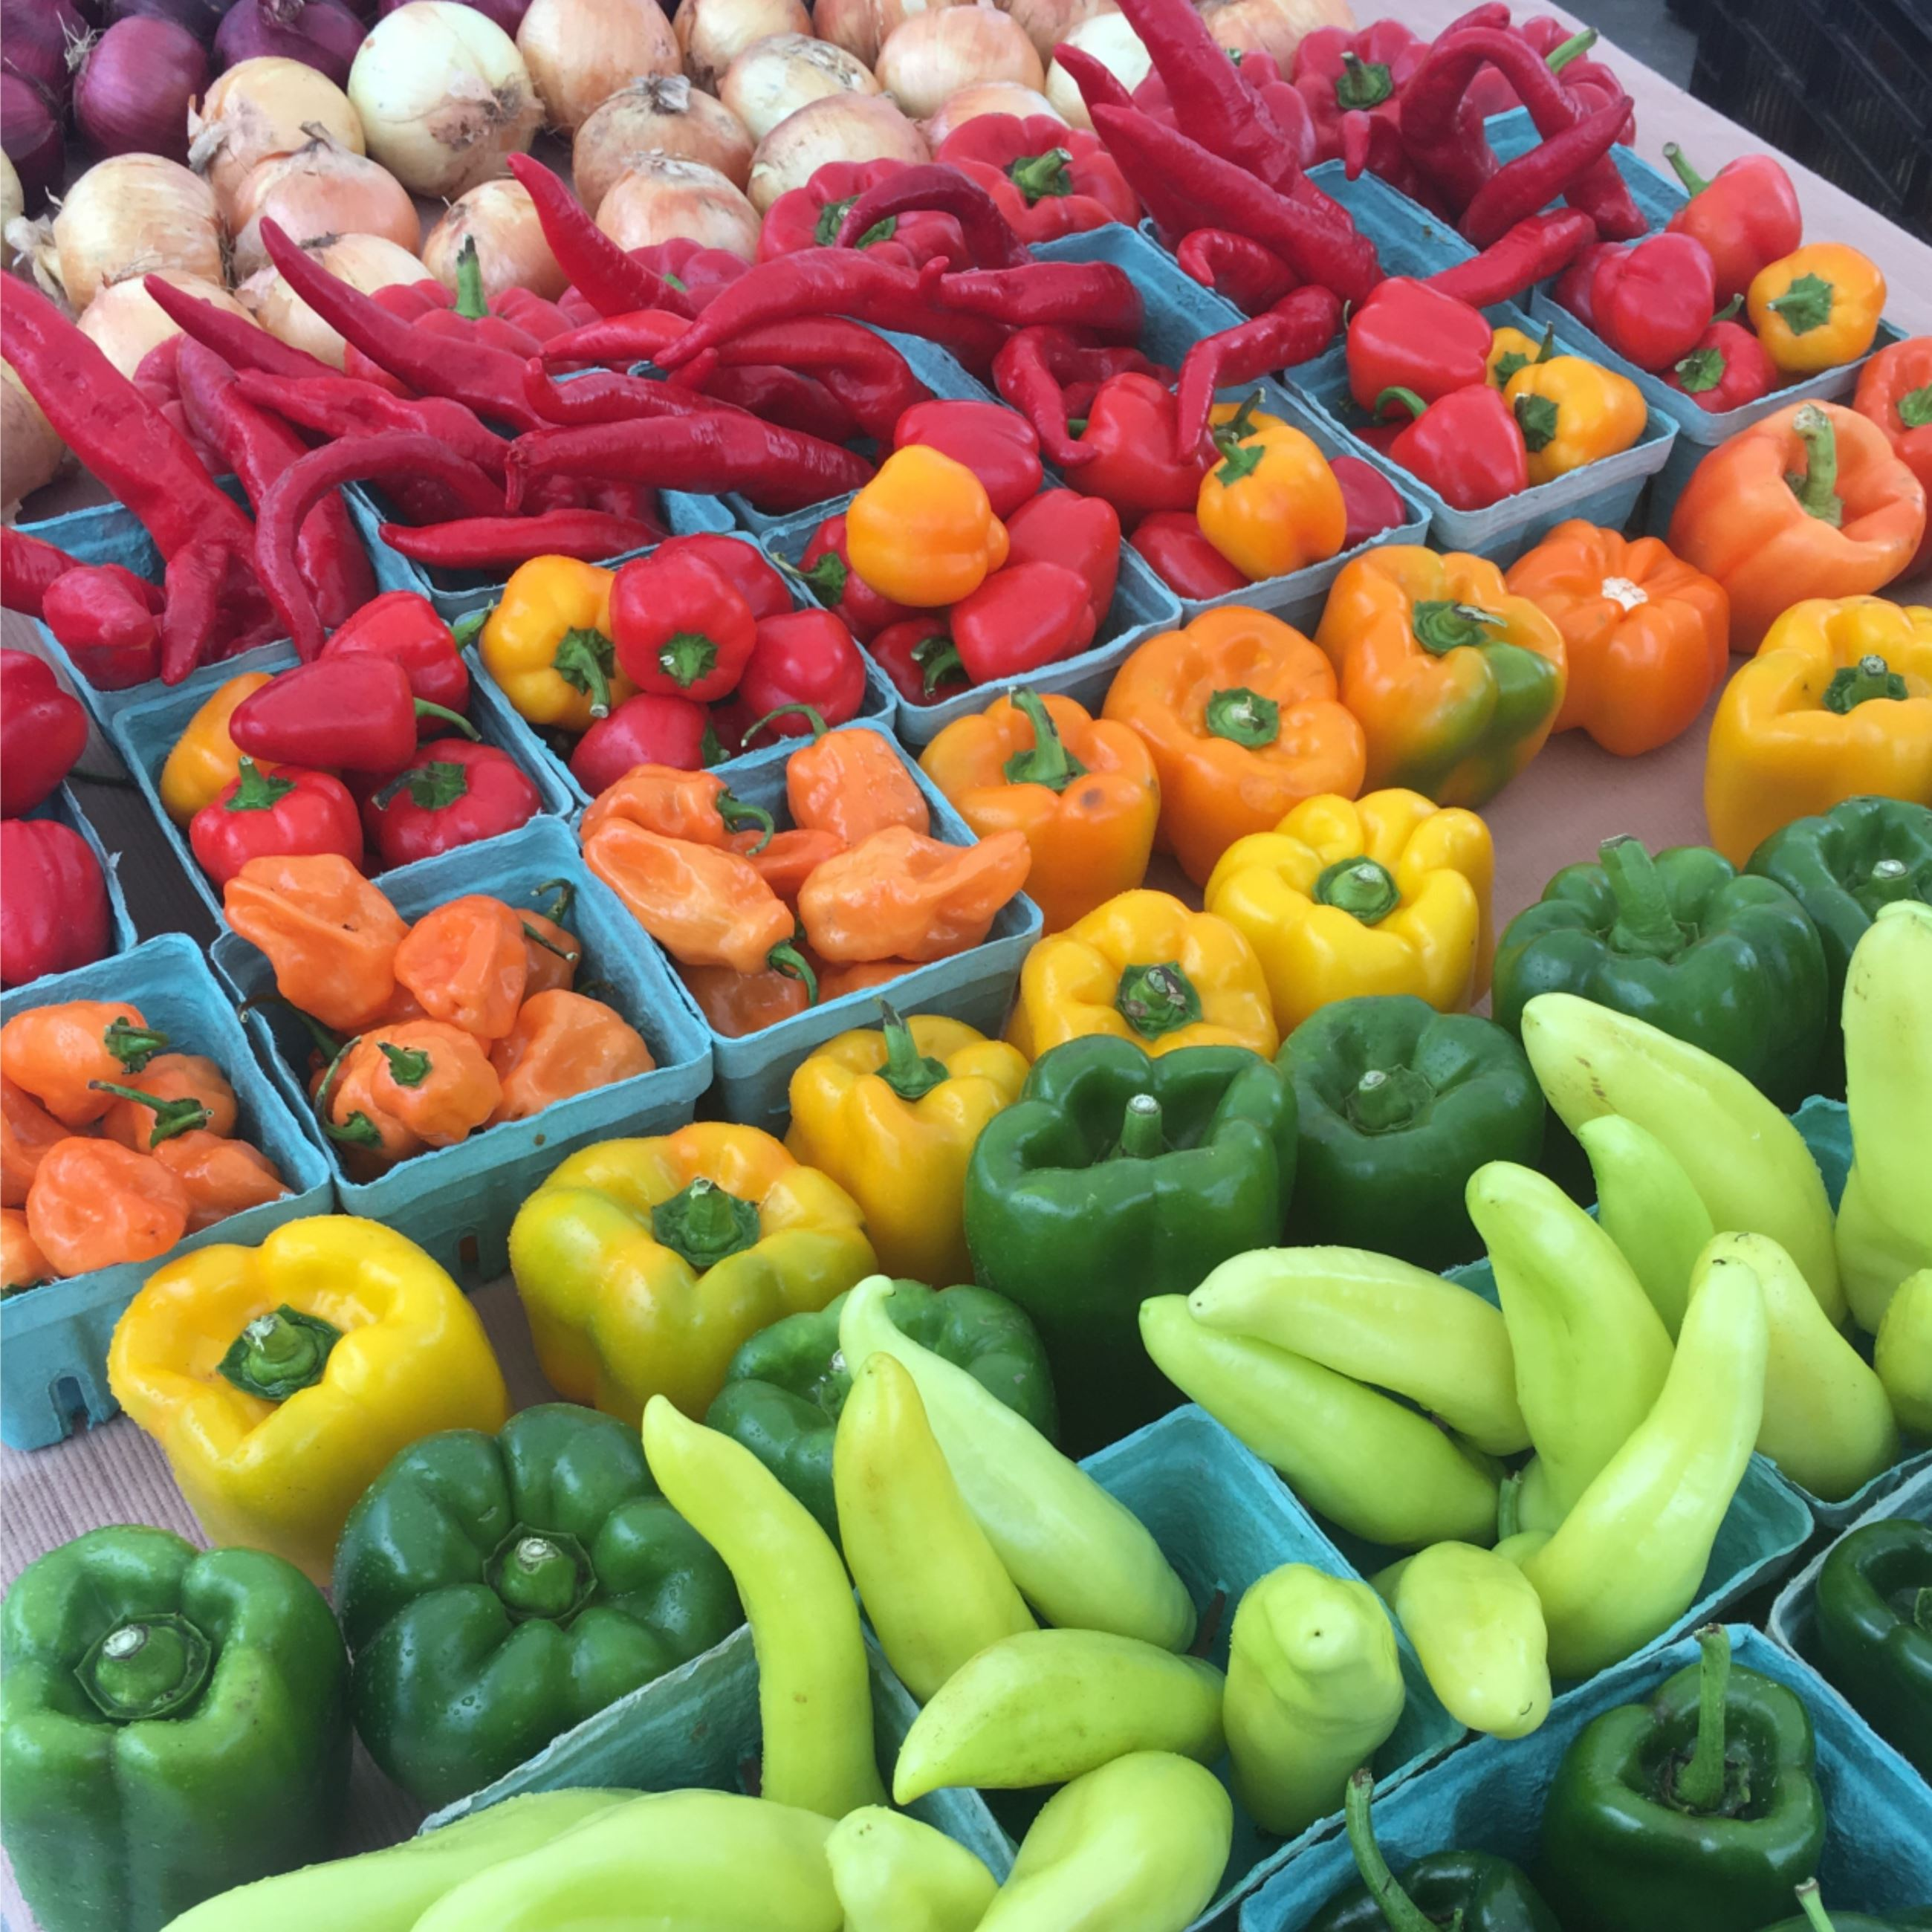 Fishers Farmers' Market | Fishers Parks & Recreation, IN